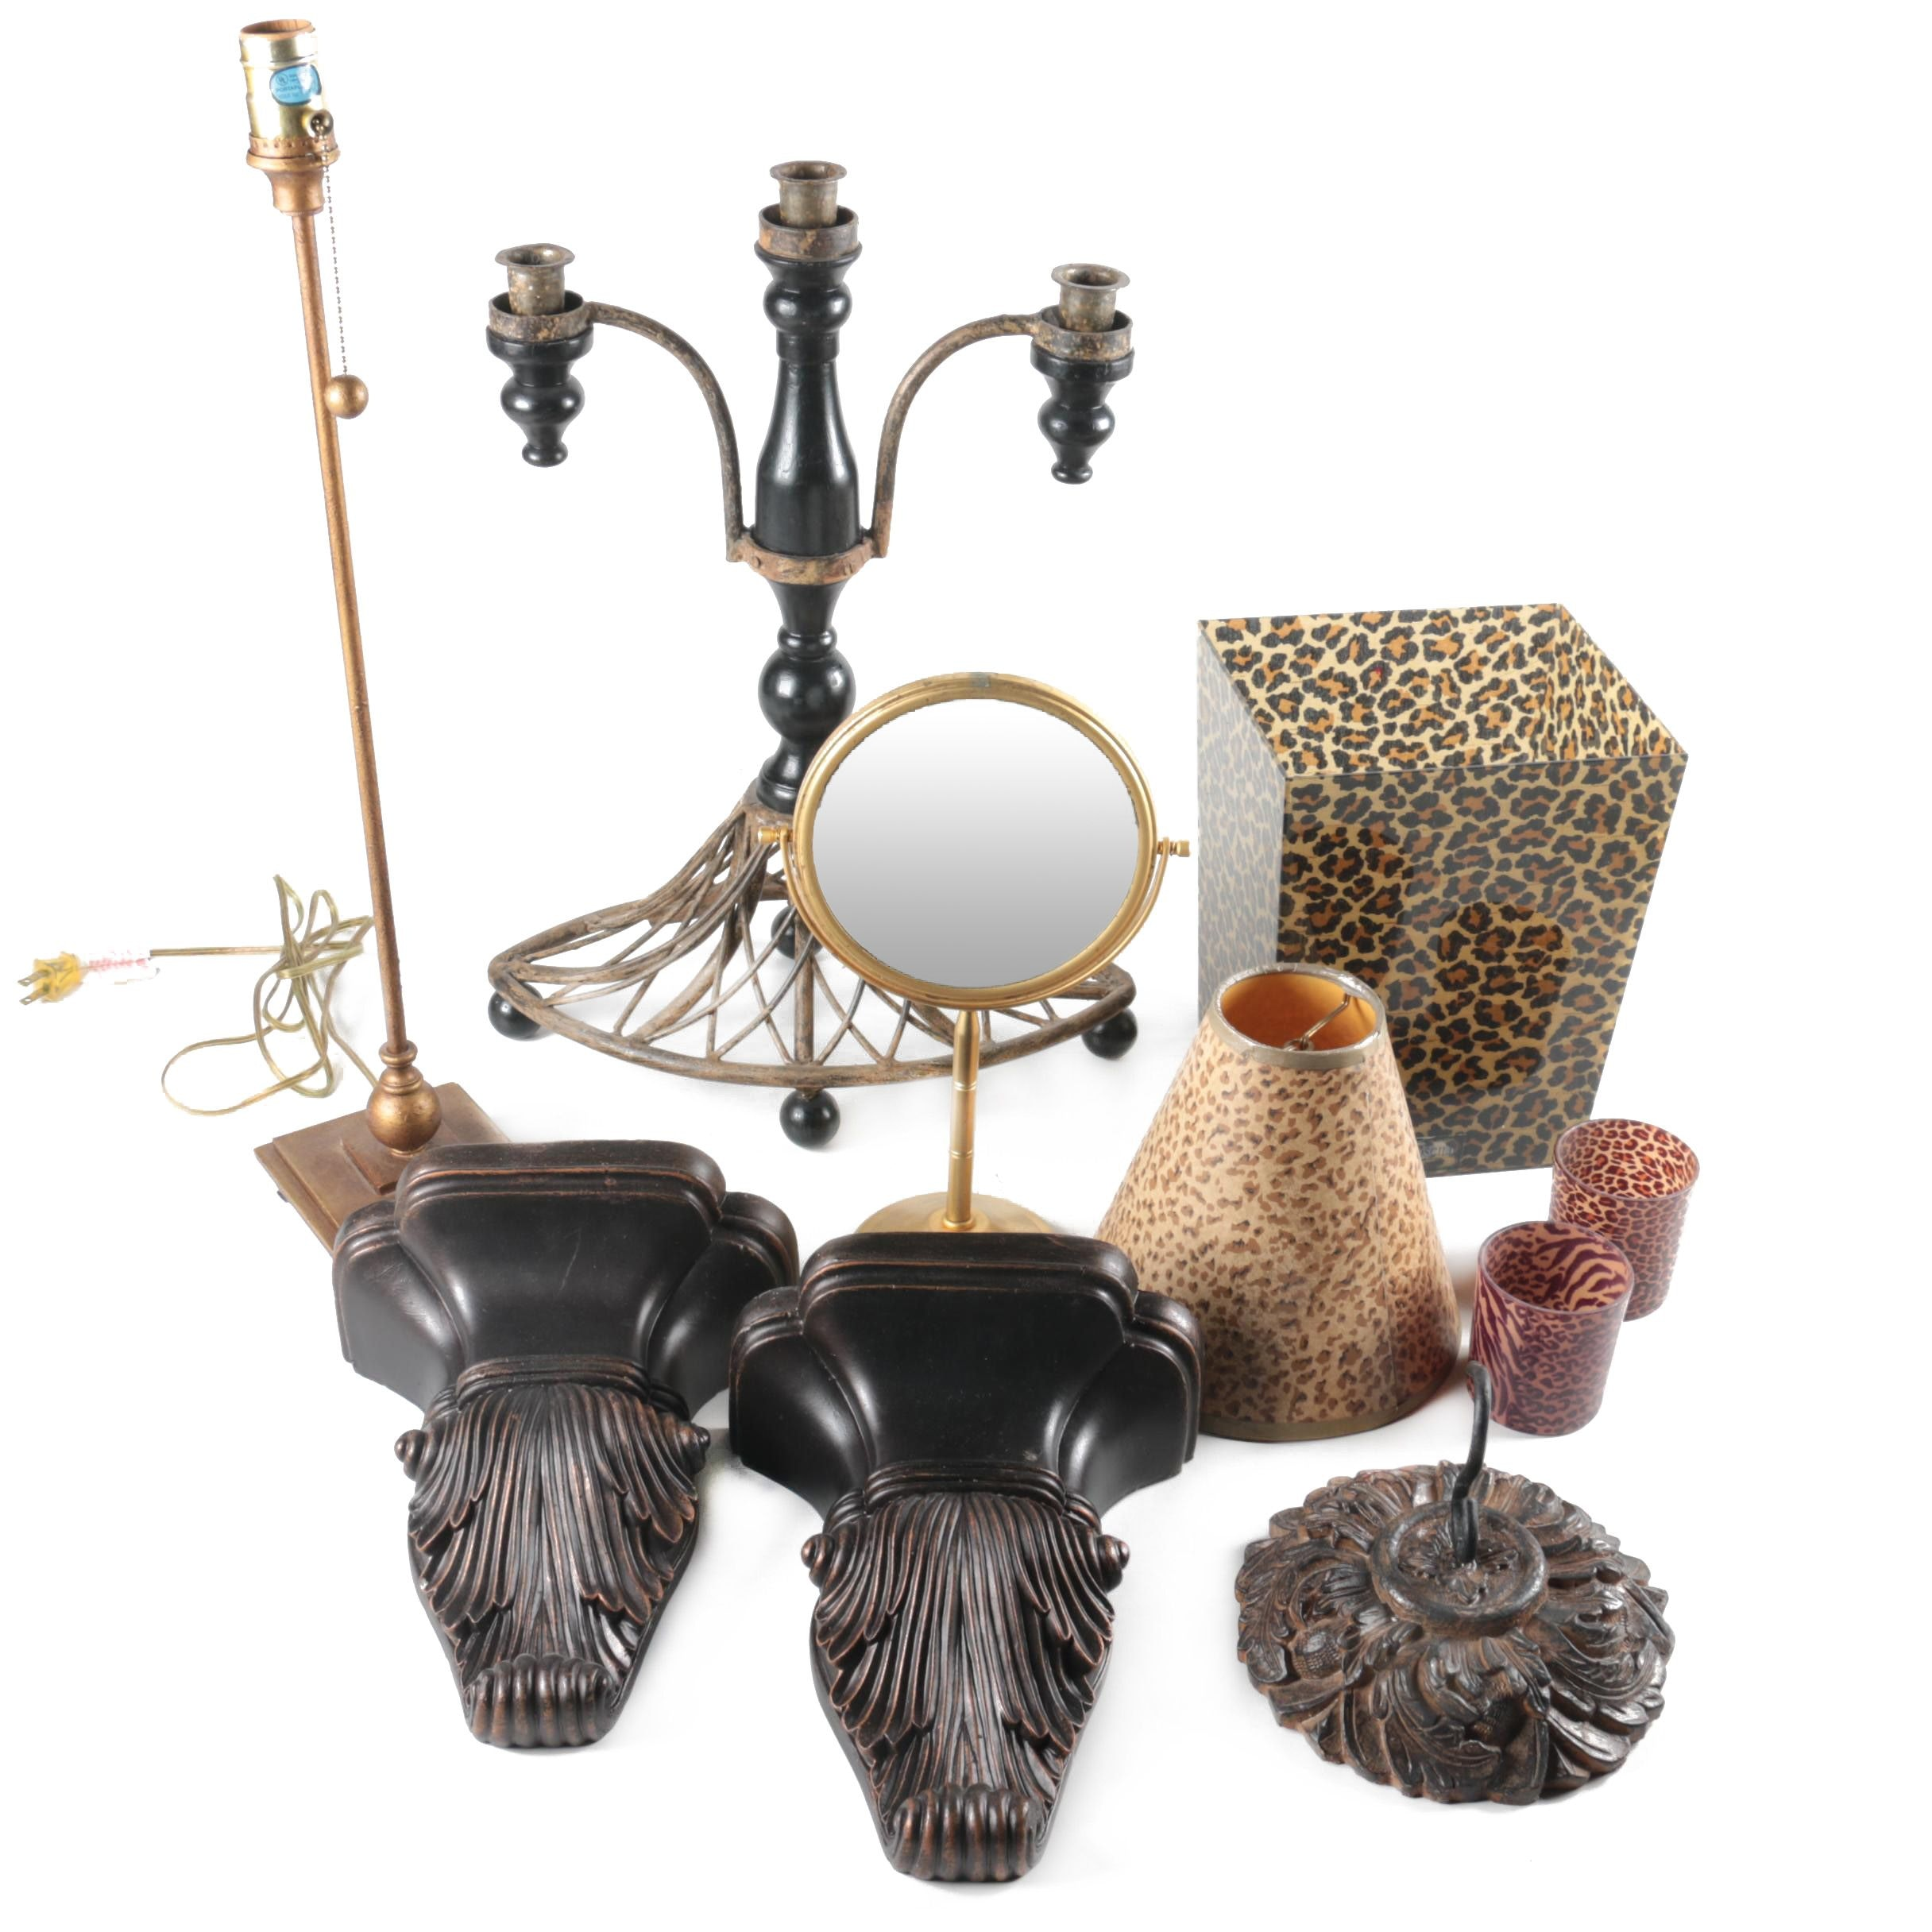 Selection of Decorative Items